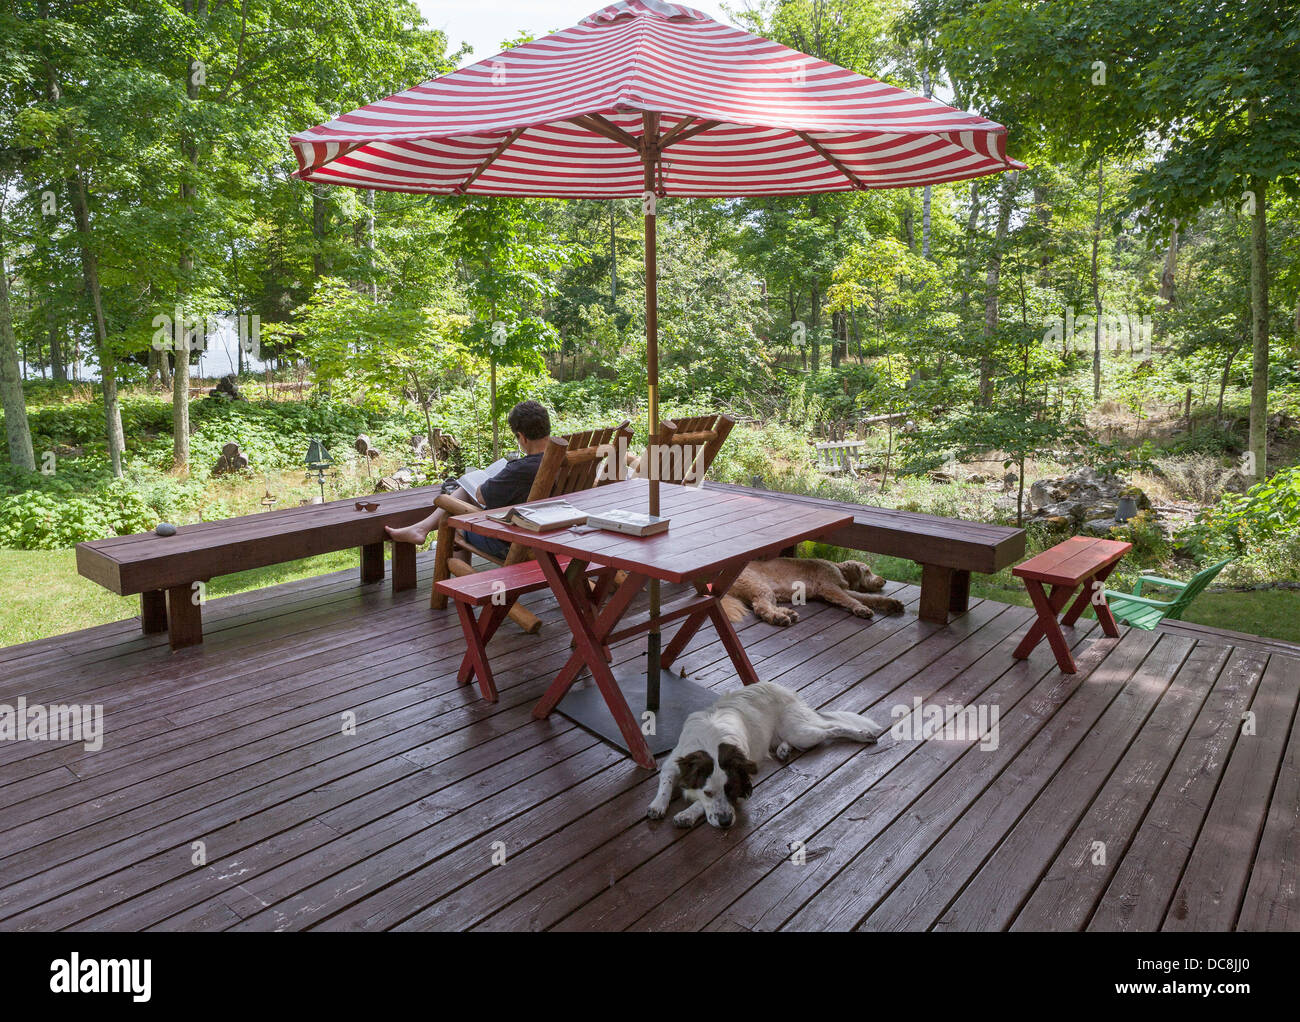 A woman and 2 dogs relax while on vacation on Washington Island, Wisconsin. - Stock Image